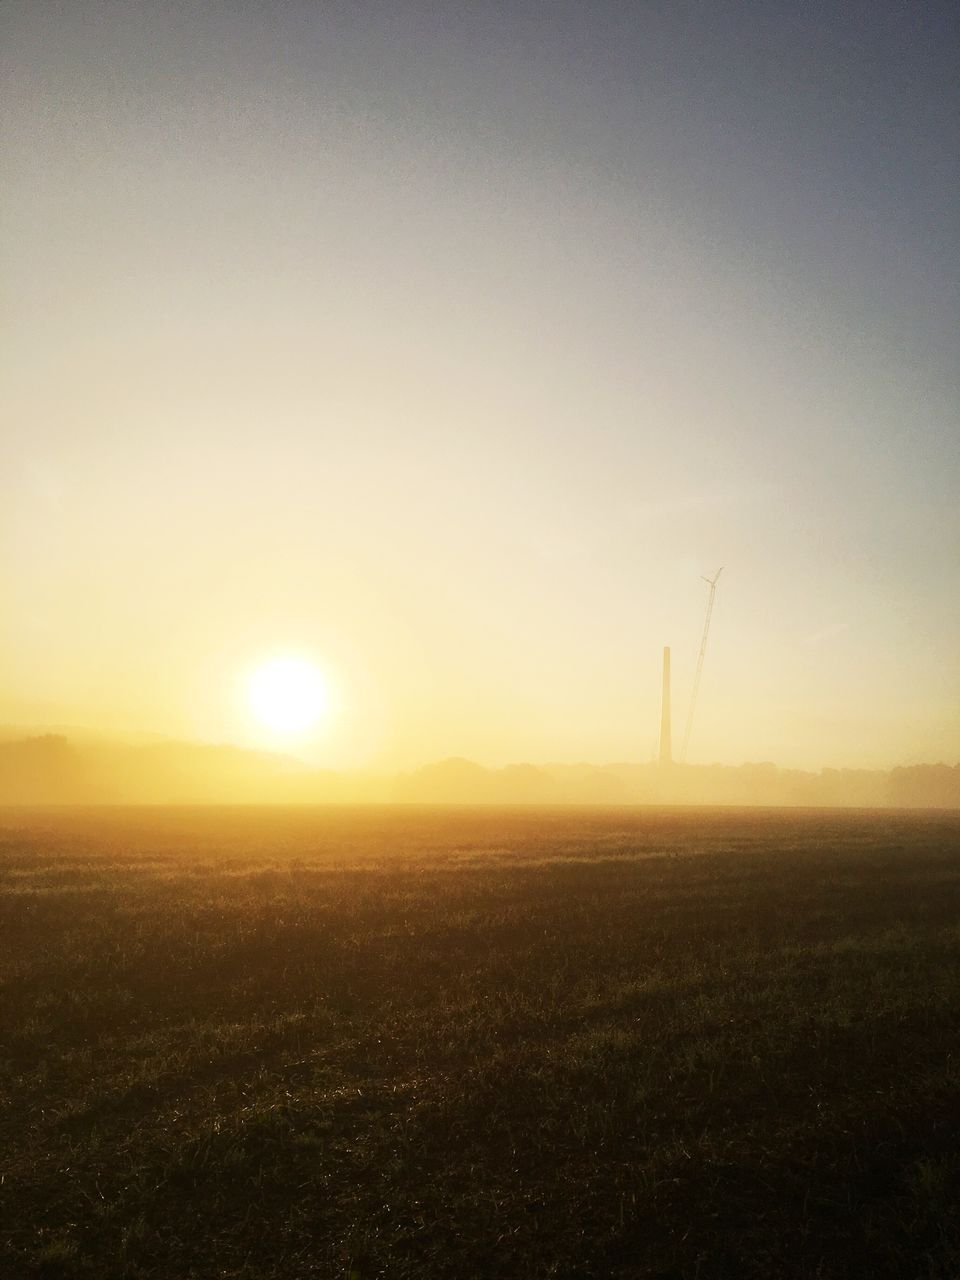 sunset, sun, field, nature, no people, tranquility, landscape, outdoors, tranquil scene, scenics, sunlight, beauty in nature, sky, wind turbine, grass, wind power, windmill, day